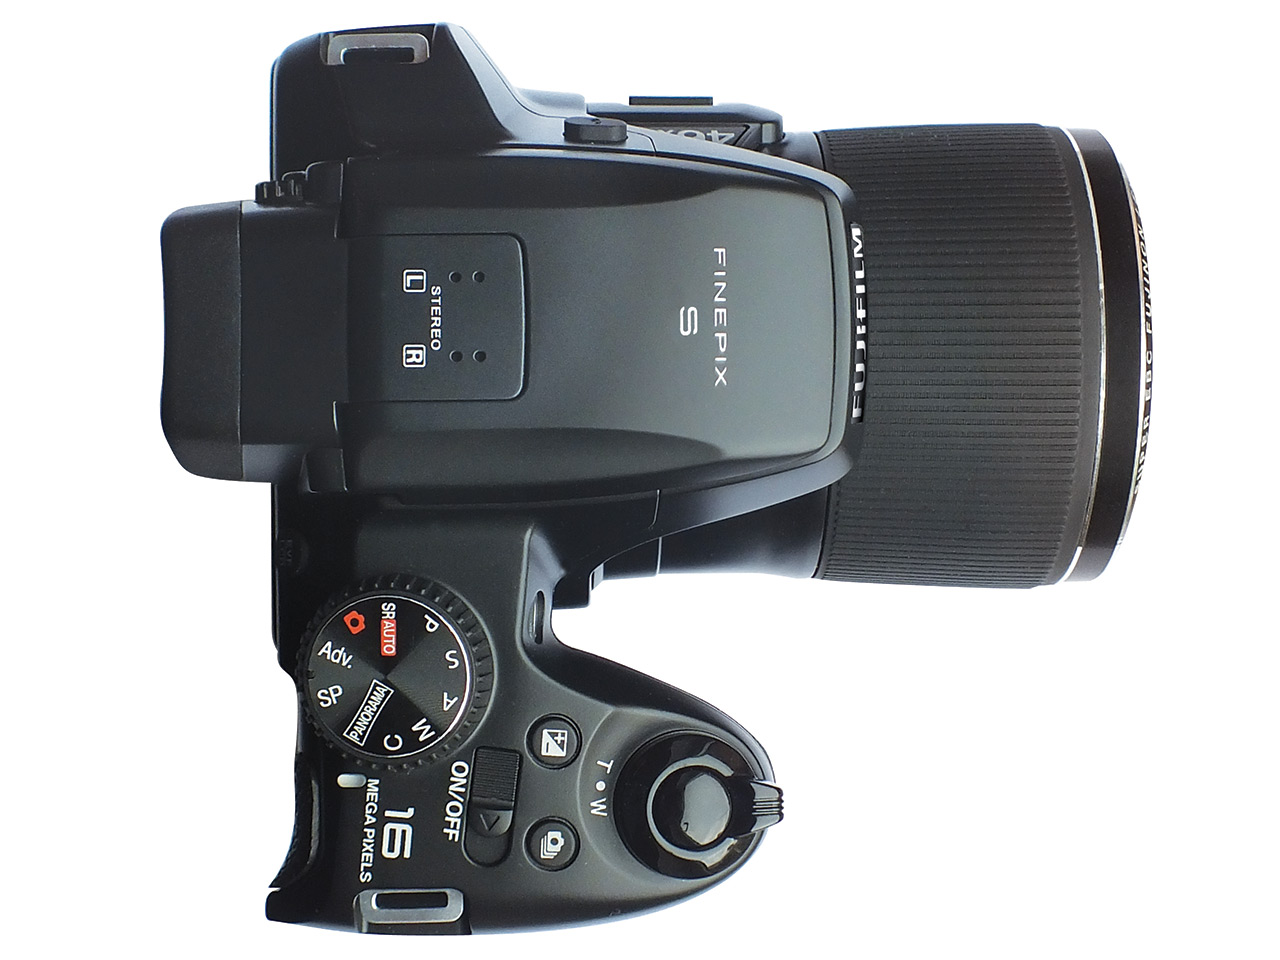 FUJIFILM FINEPIX S8300 CAMERA DRIVERS (2019)